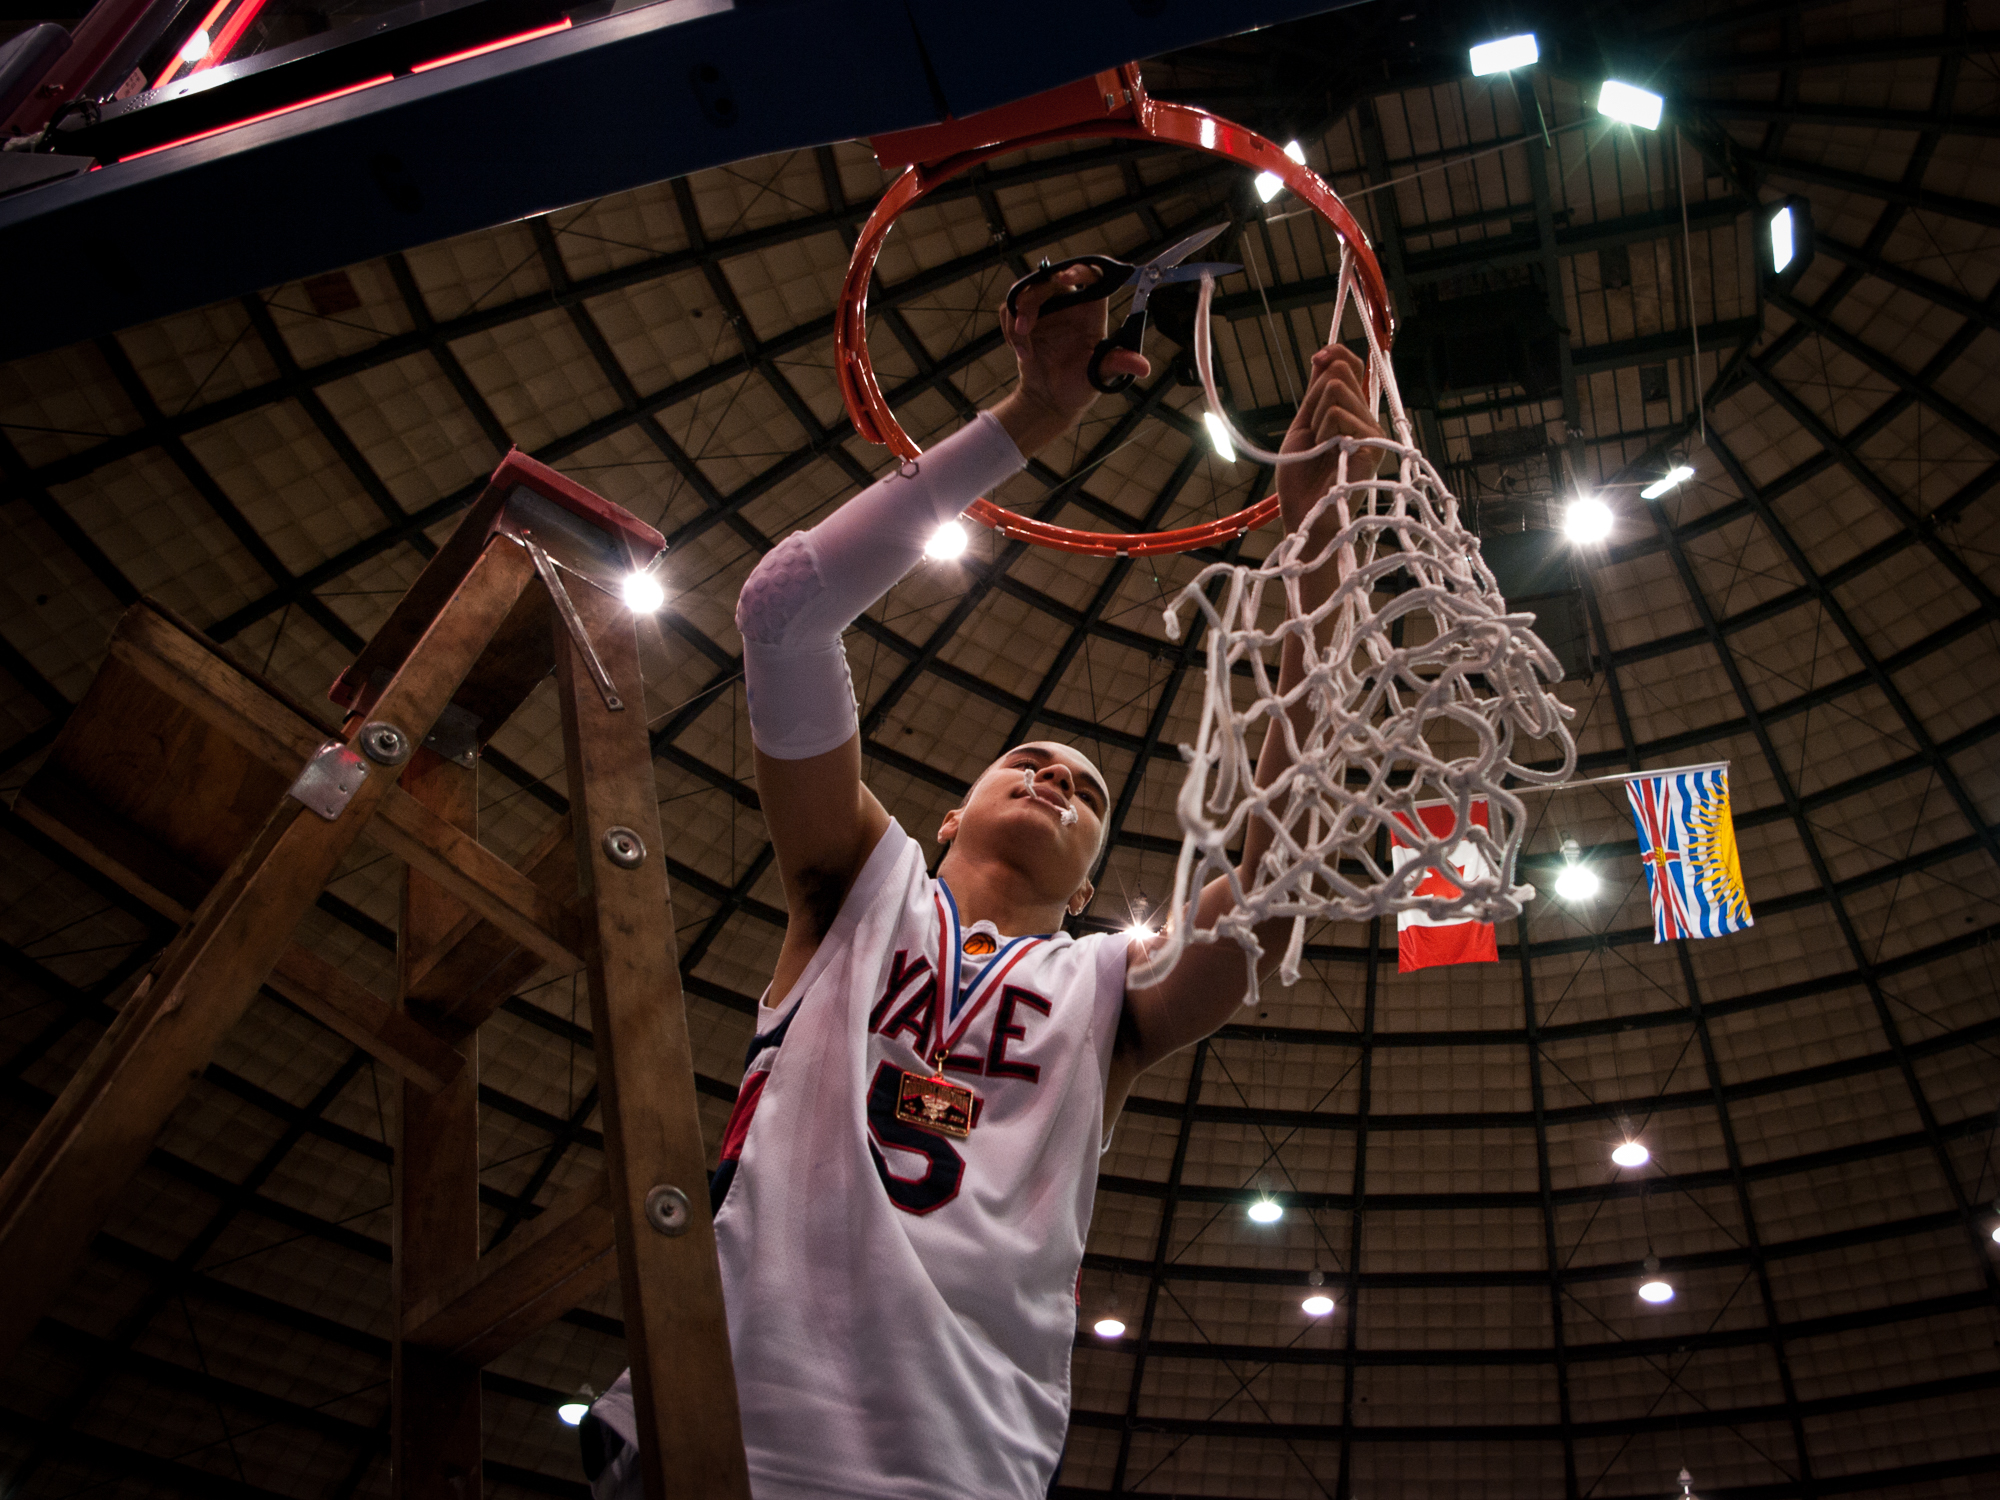 Jordan Blackman cuts down the net after his team won the 2010 BC High School Basketball Championships.